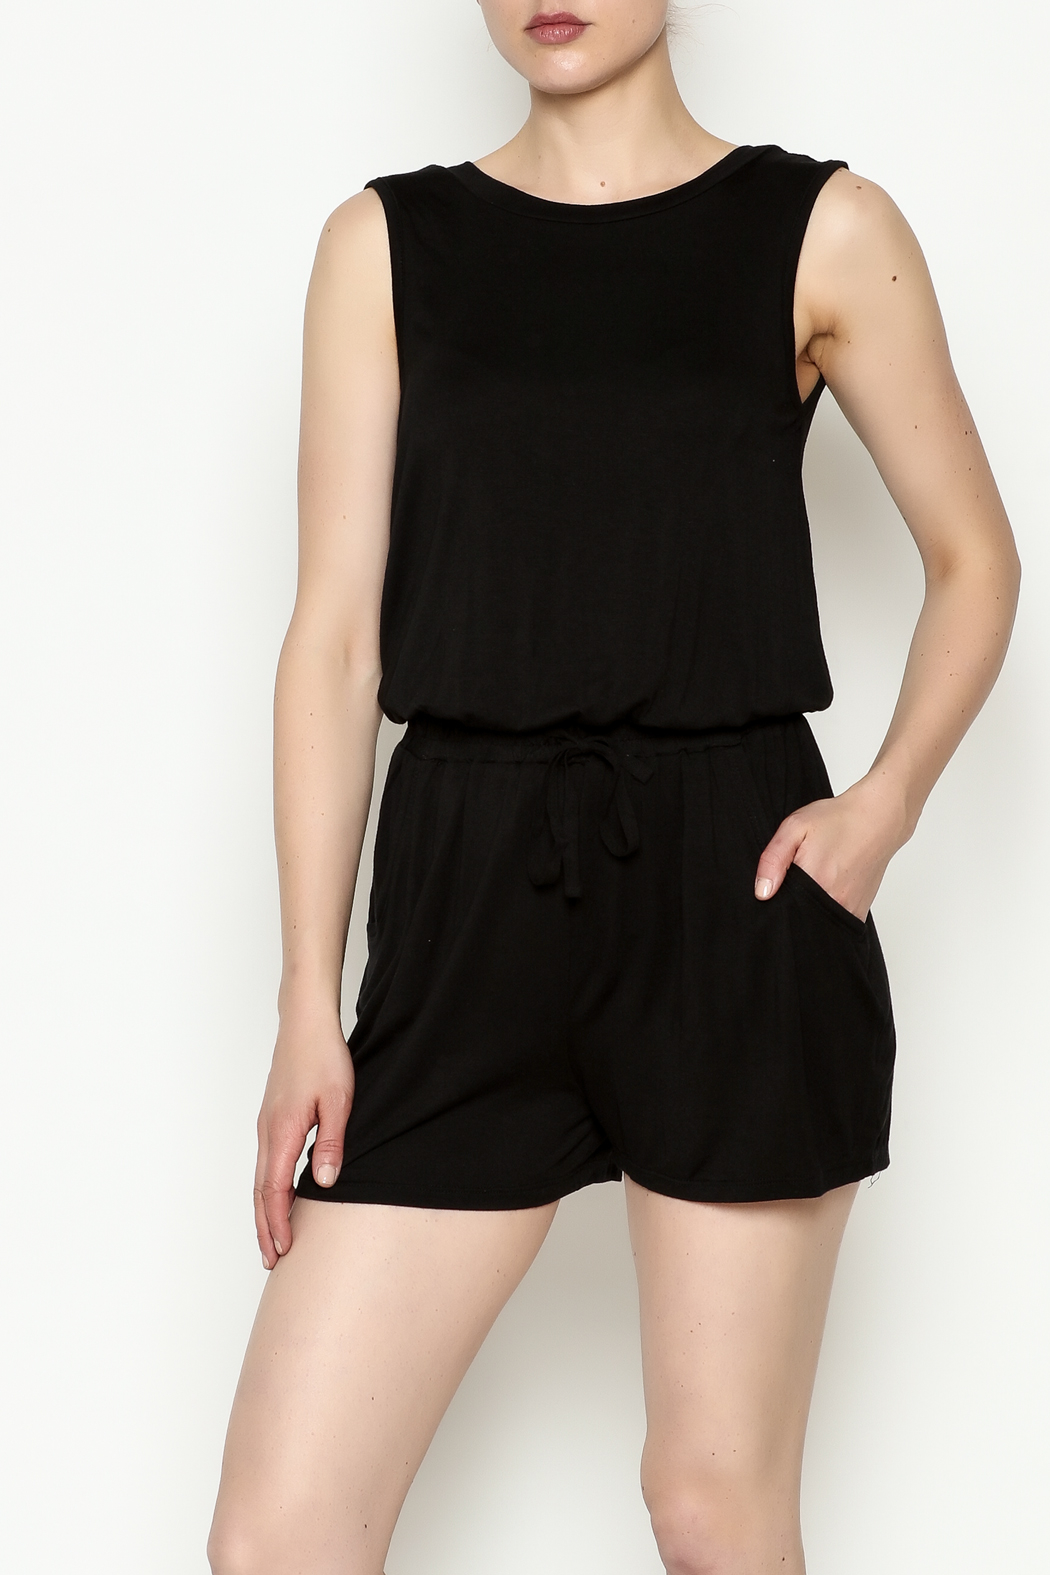 Olive & Oak Black Sleeveless Romper - Front Cropped Image